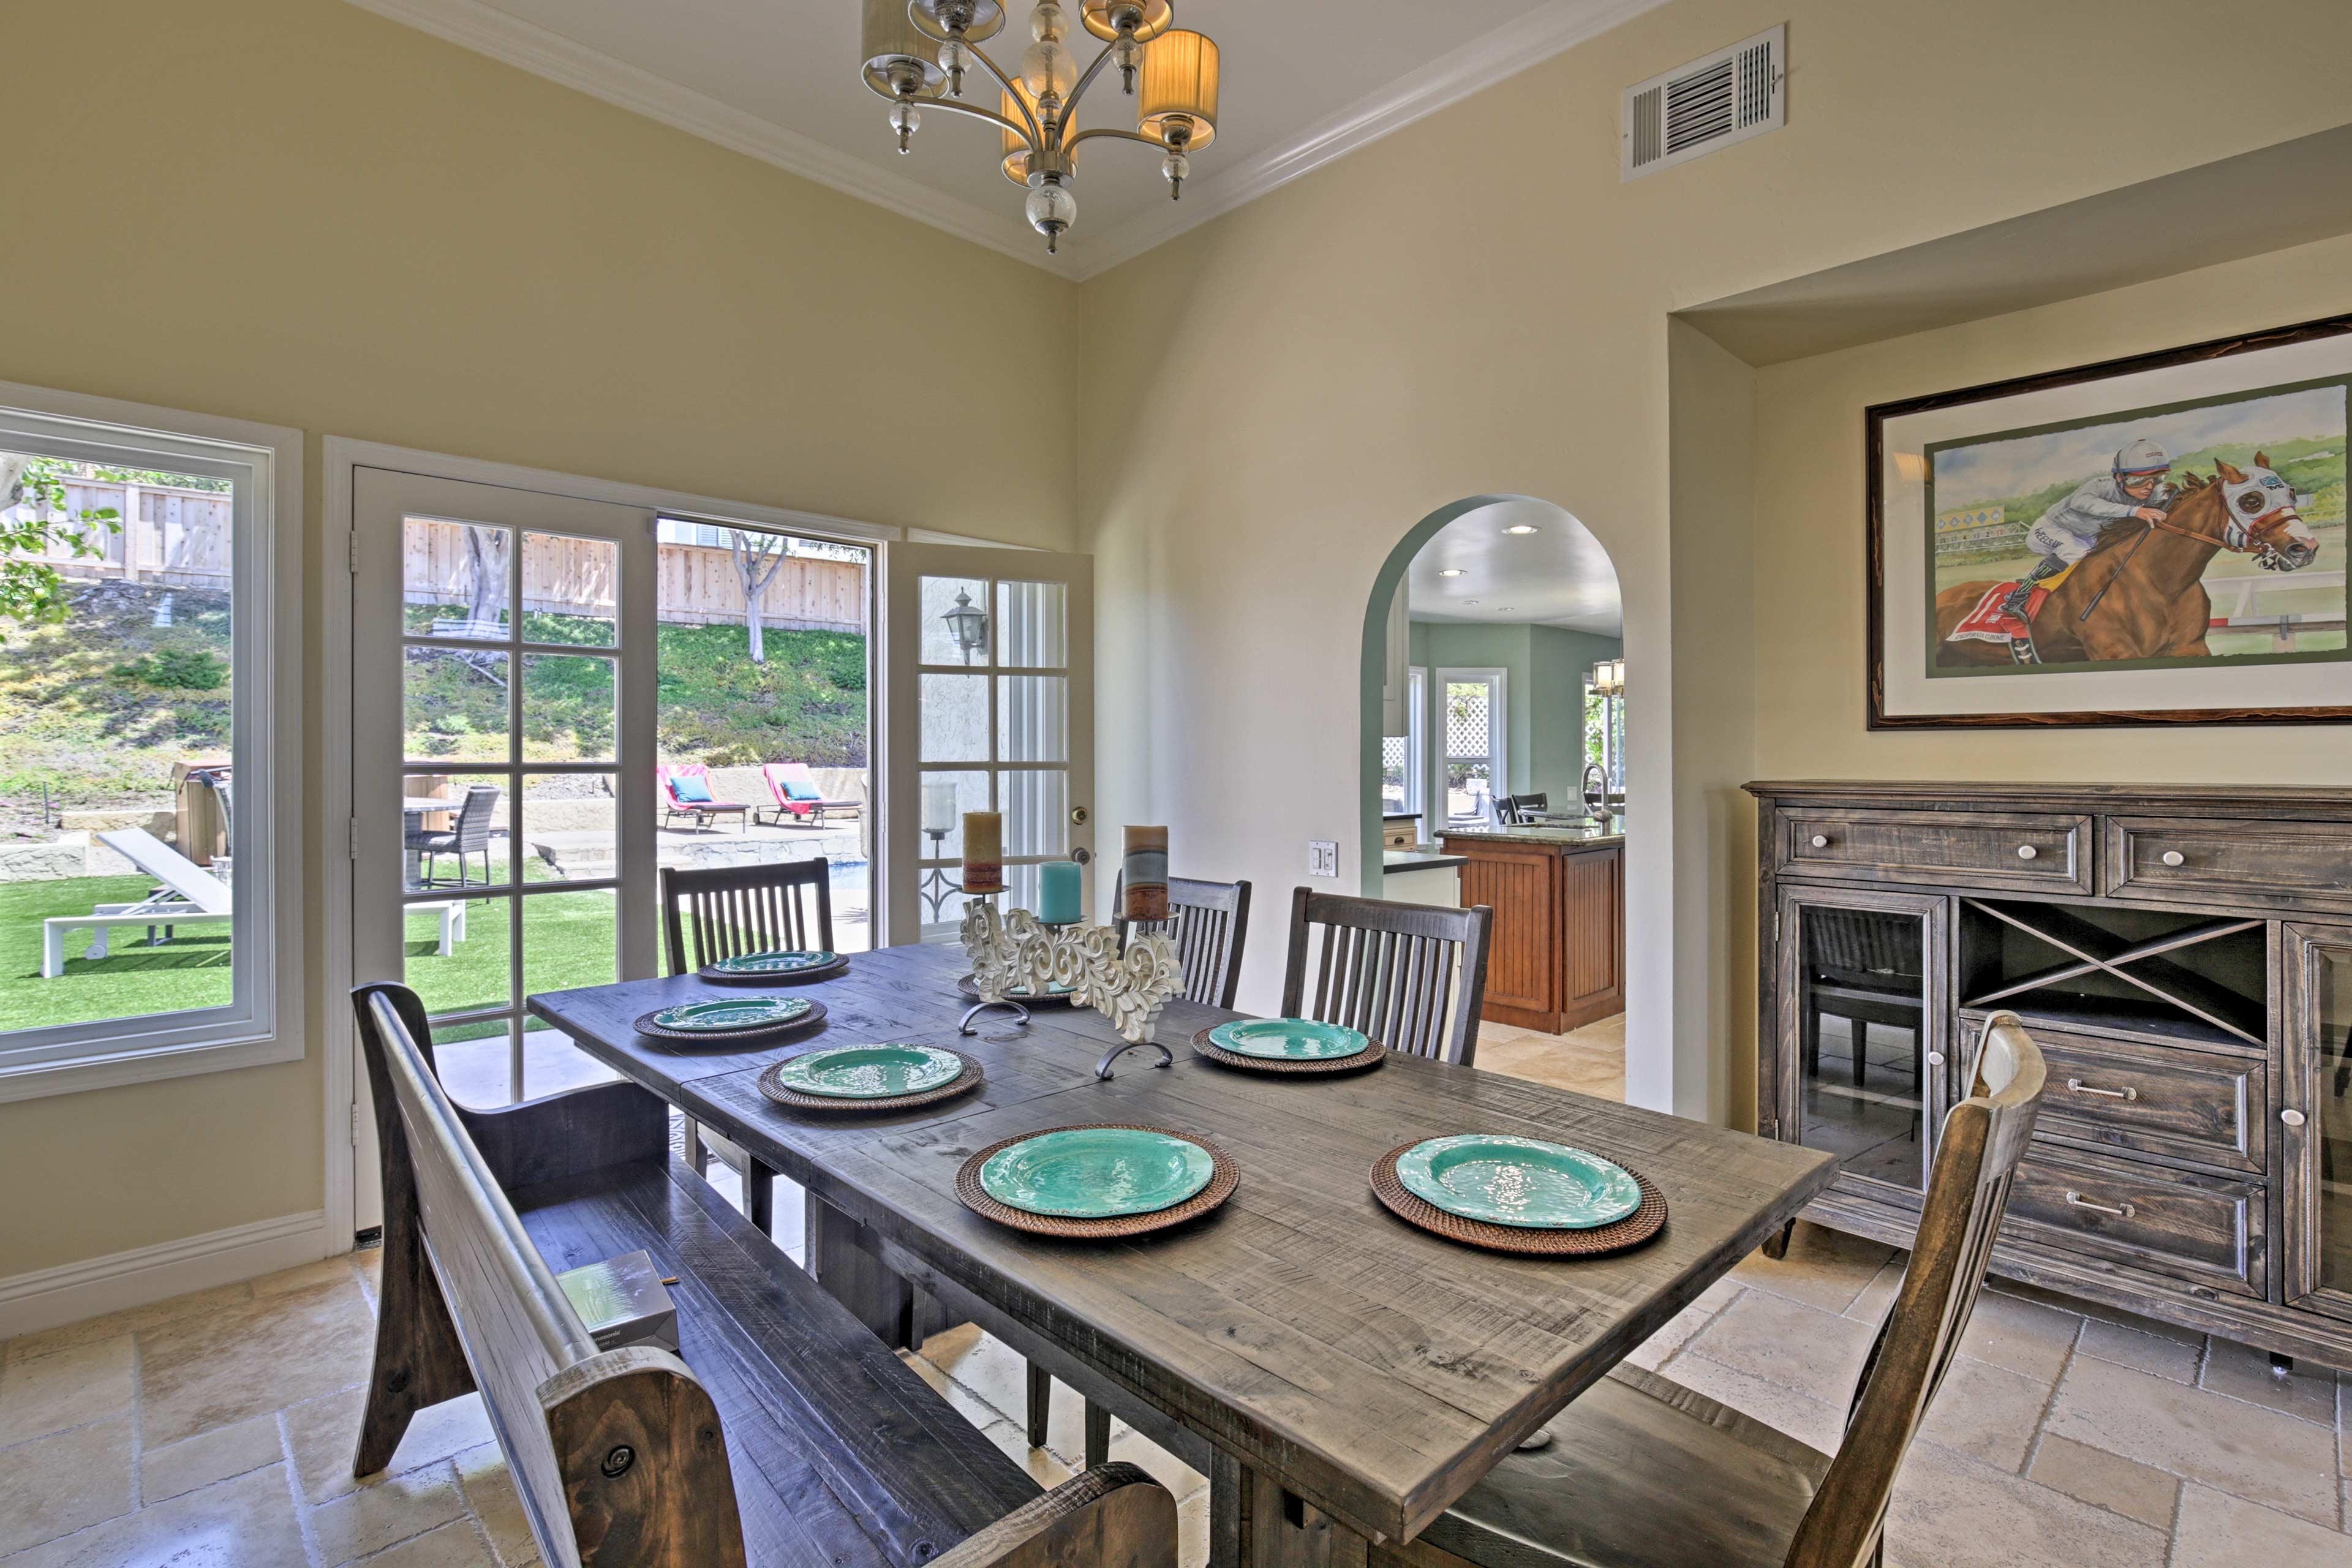 For formal meals, gather at this stately dining table with room for 6.